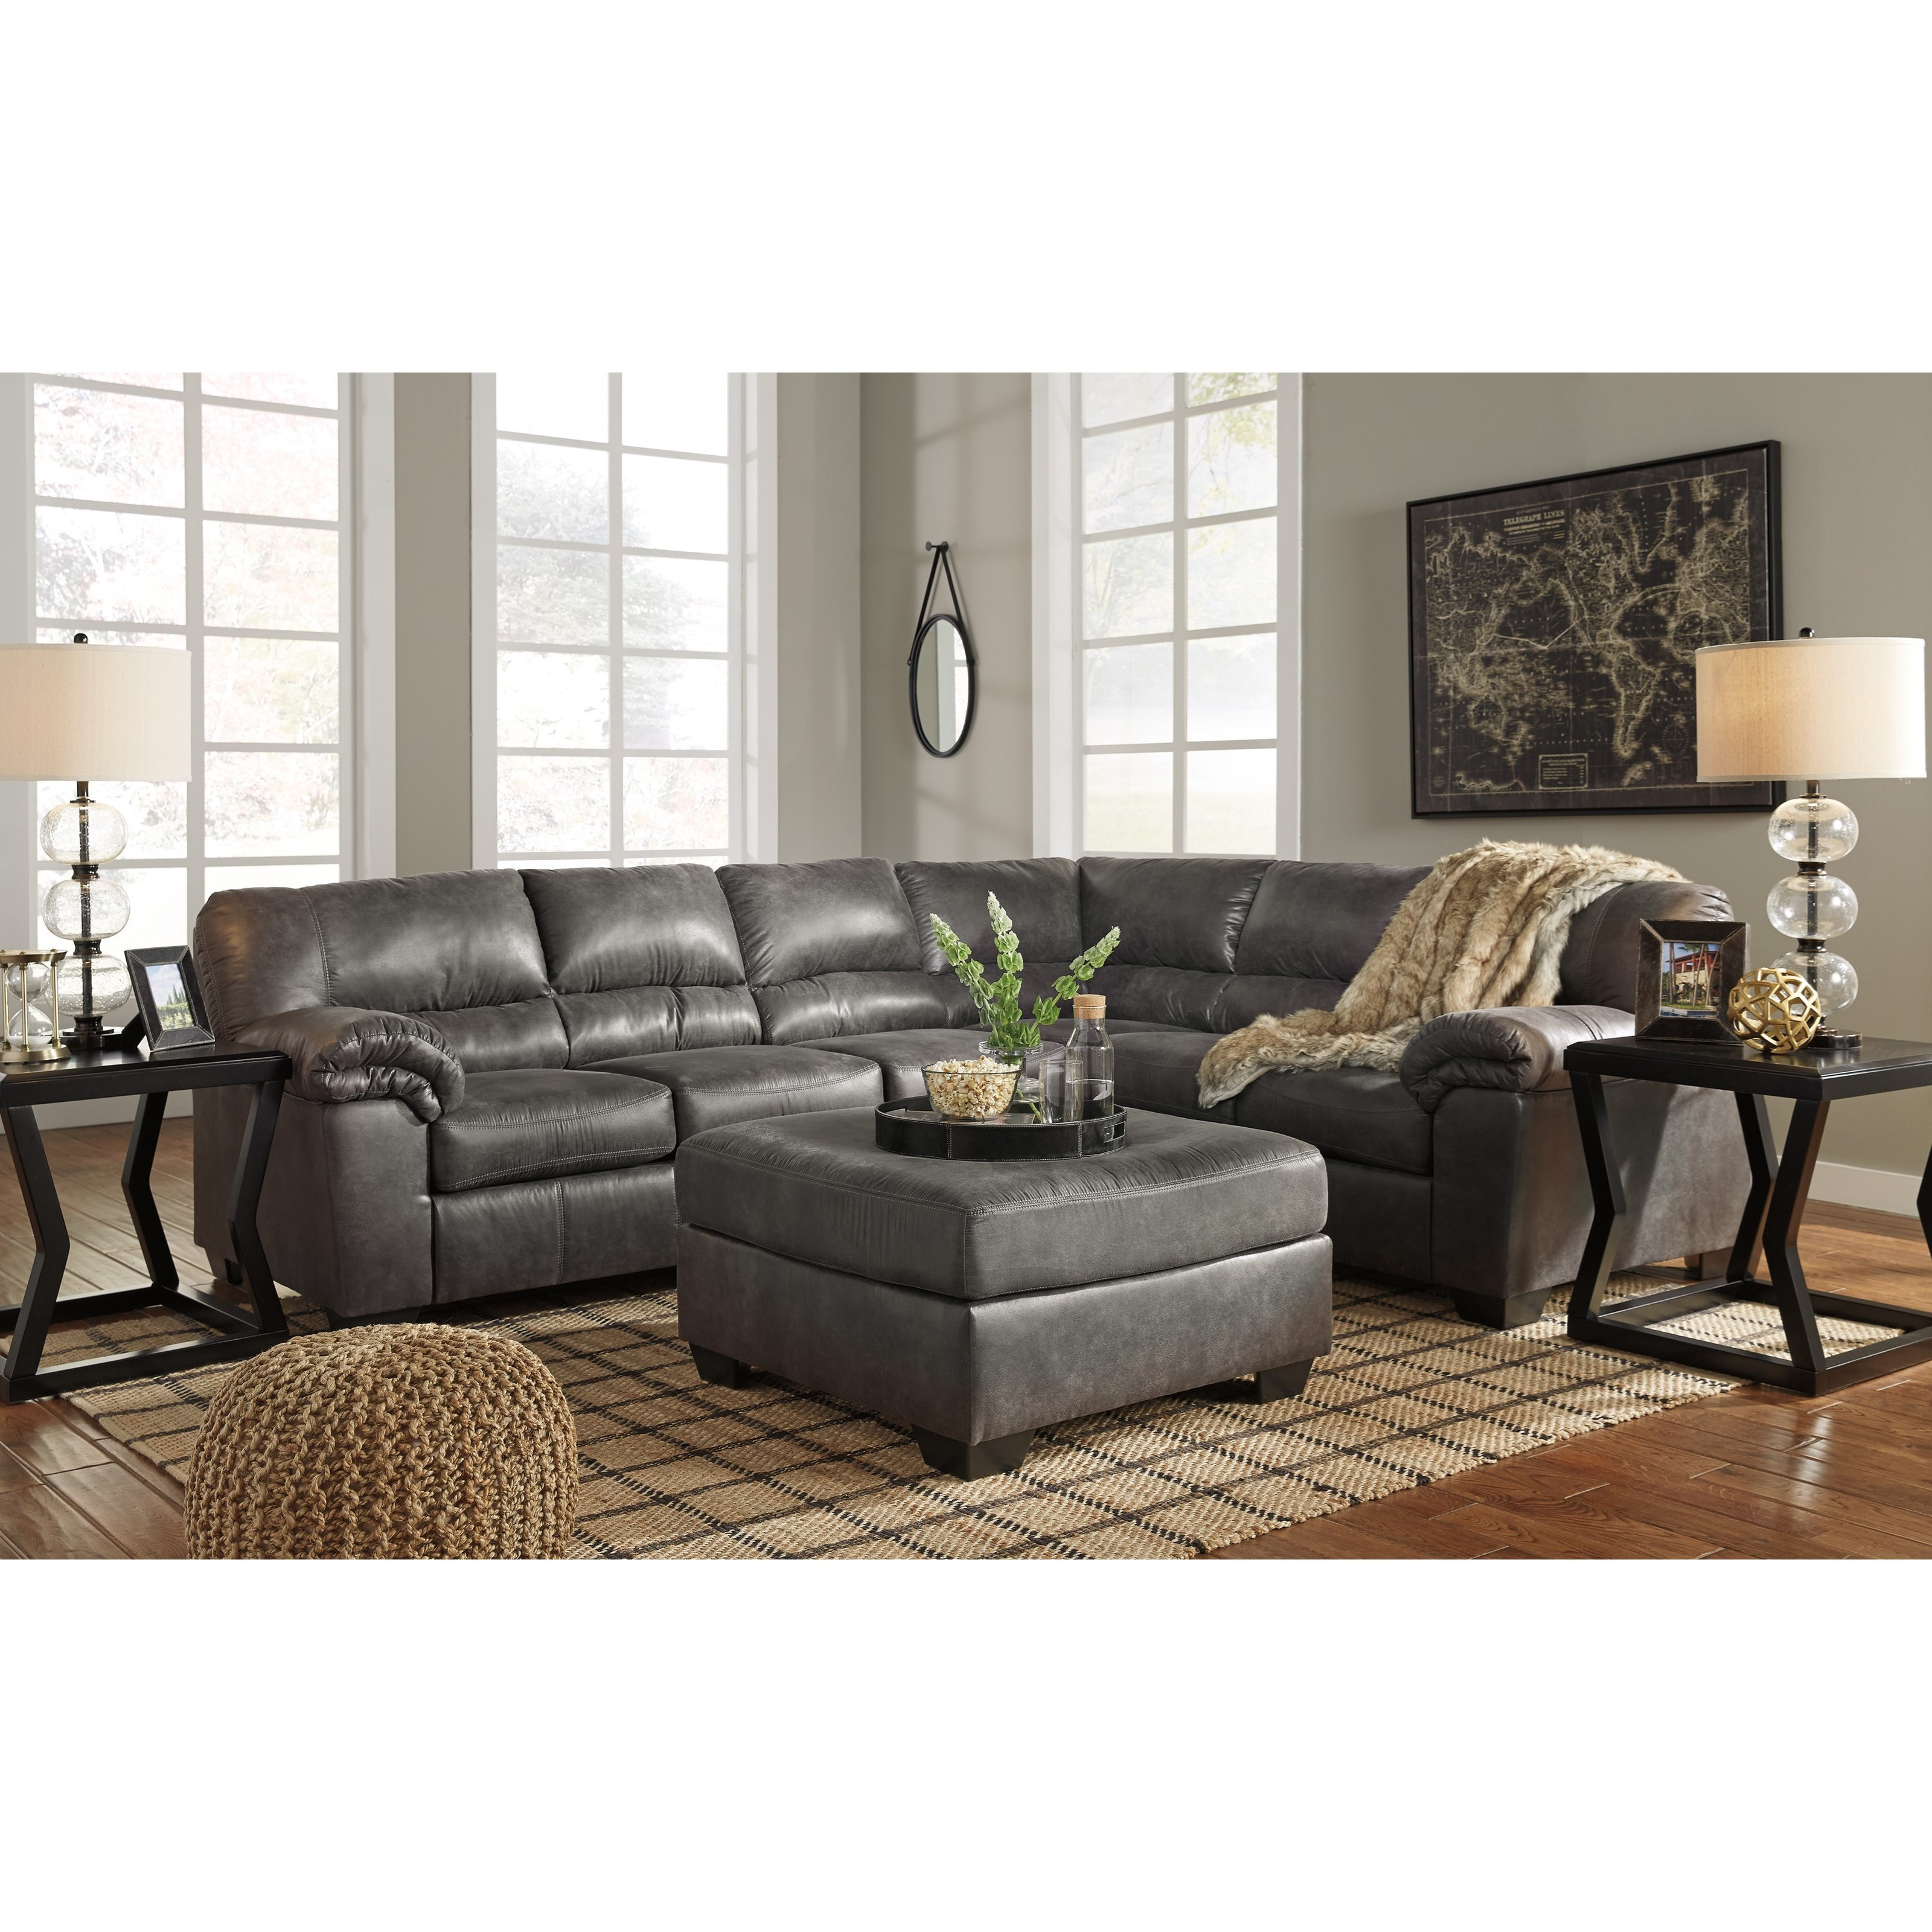 Bladen Stationary Living Room Group by Signature Design by Ashley at Northeast Factory Direct